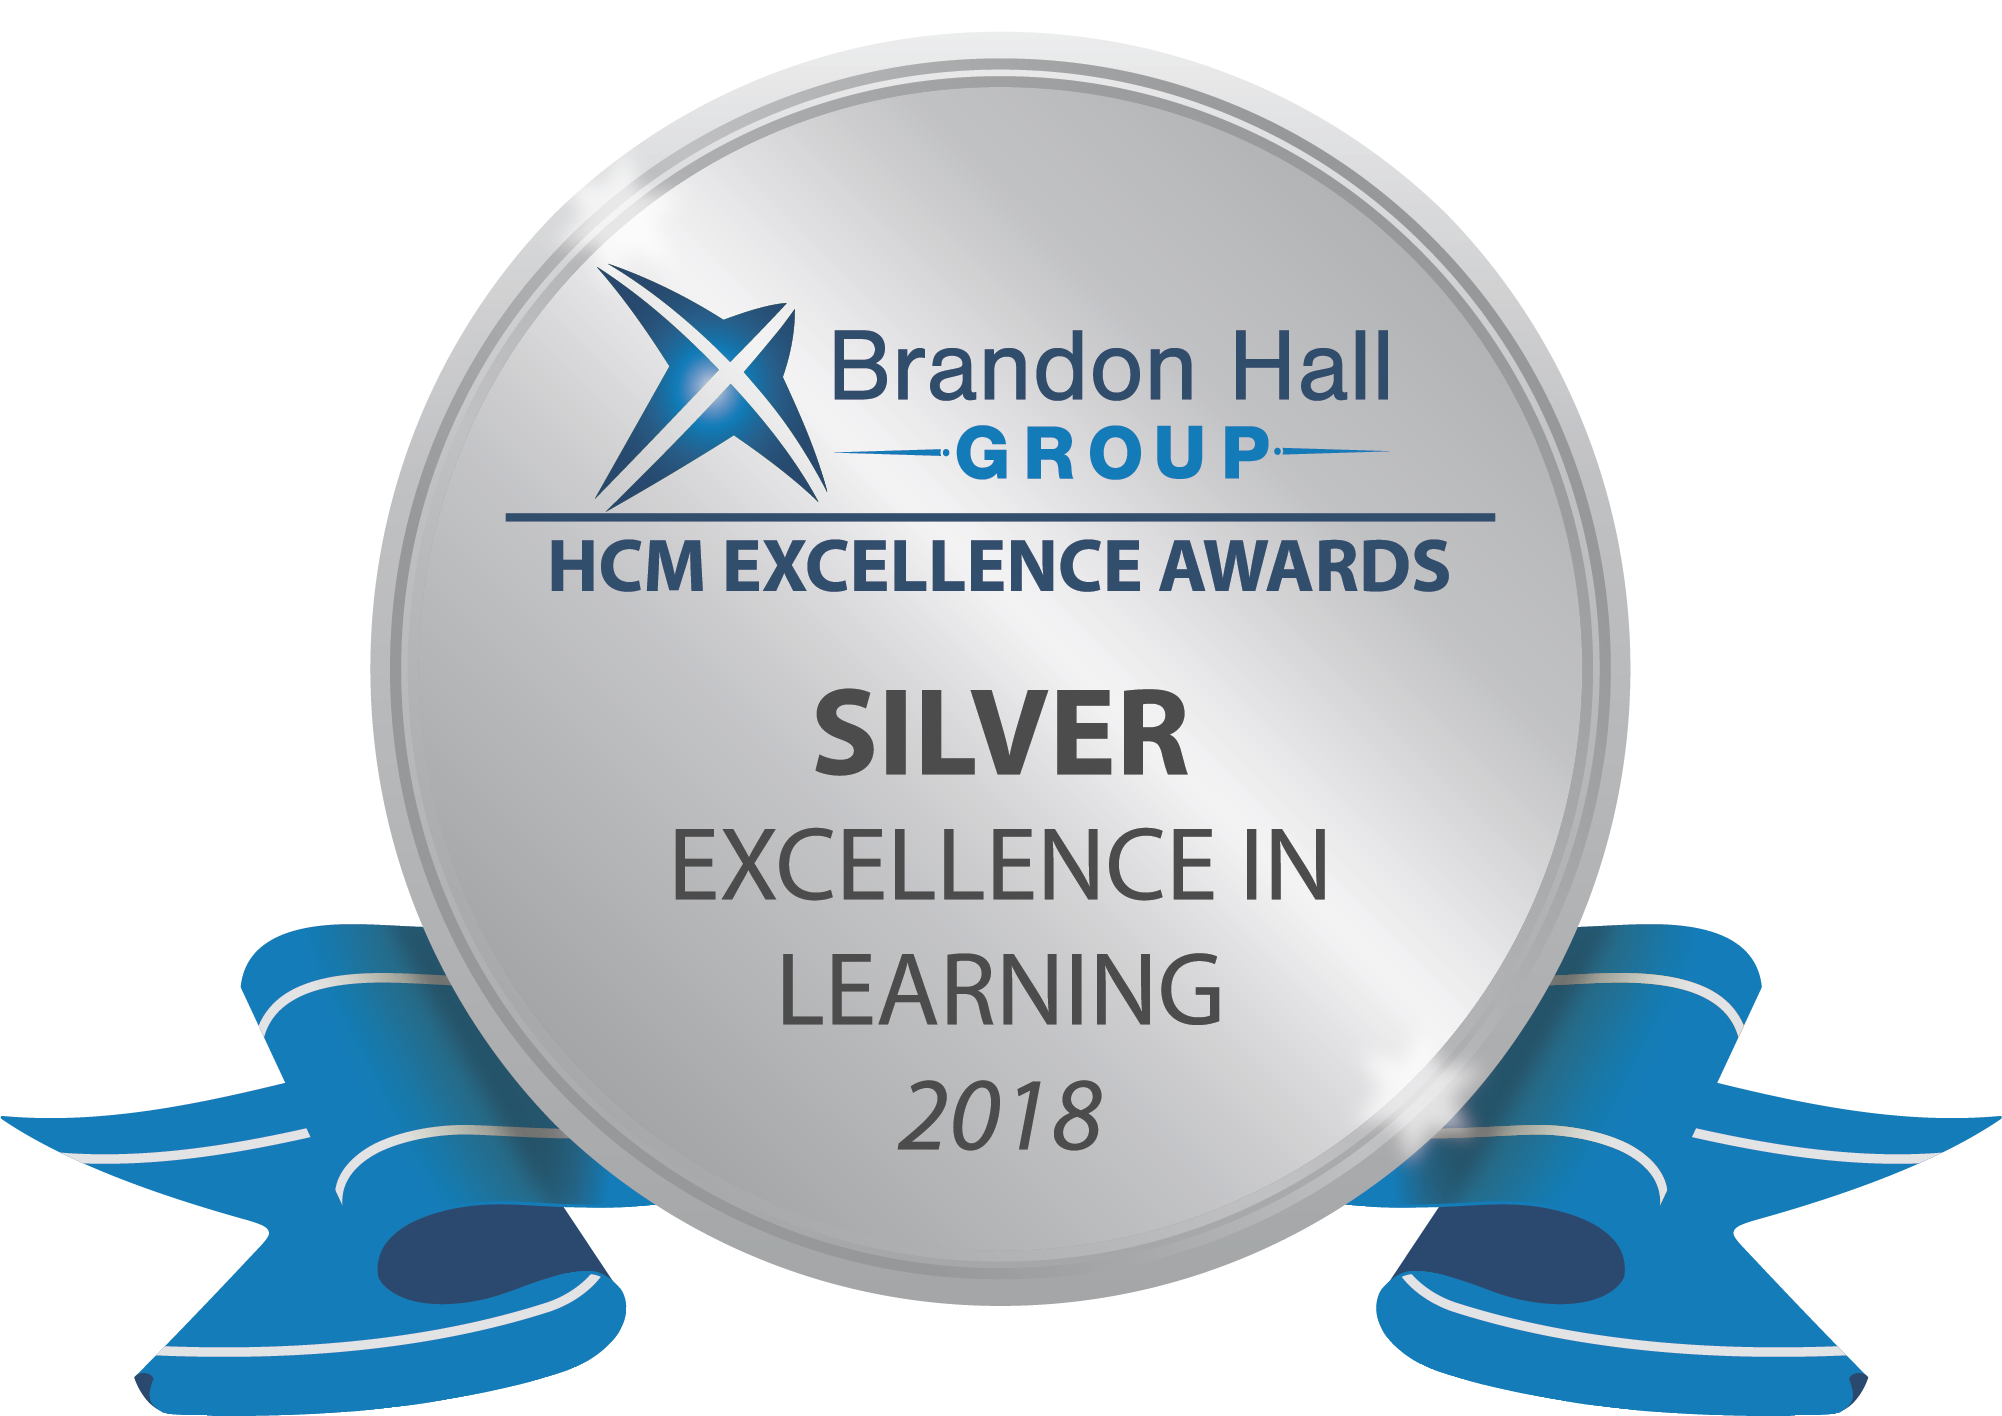 Brandon Hall Group HCM Excellence Awards Silver Excellence in Learning 2018